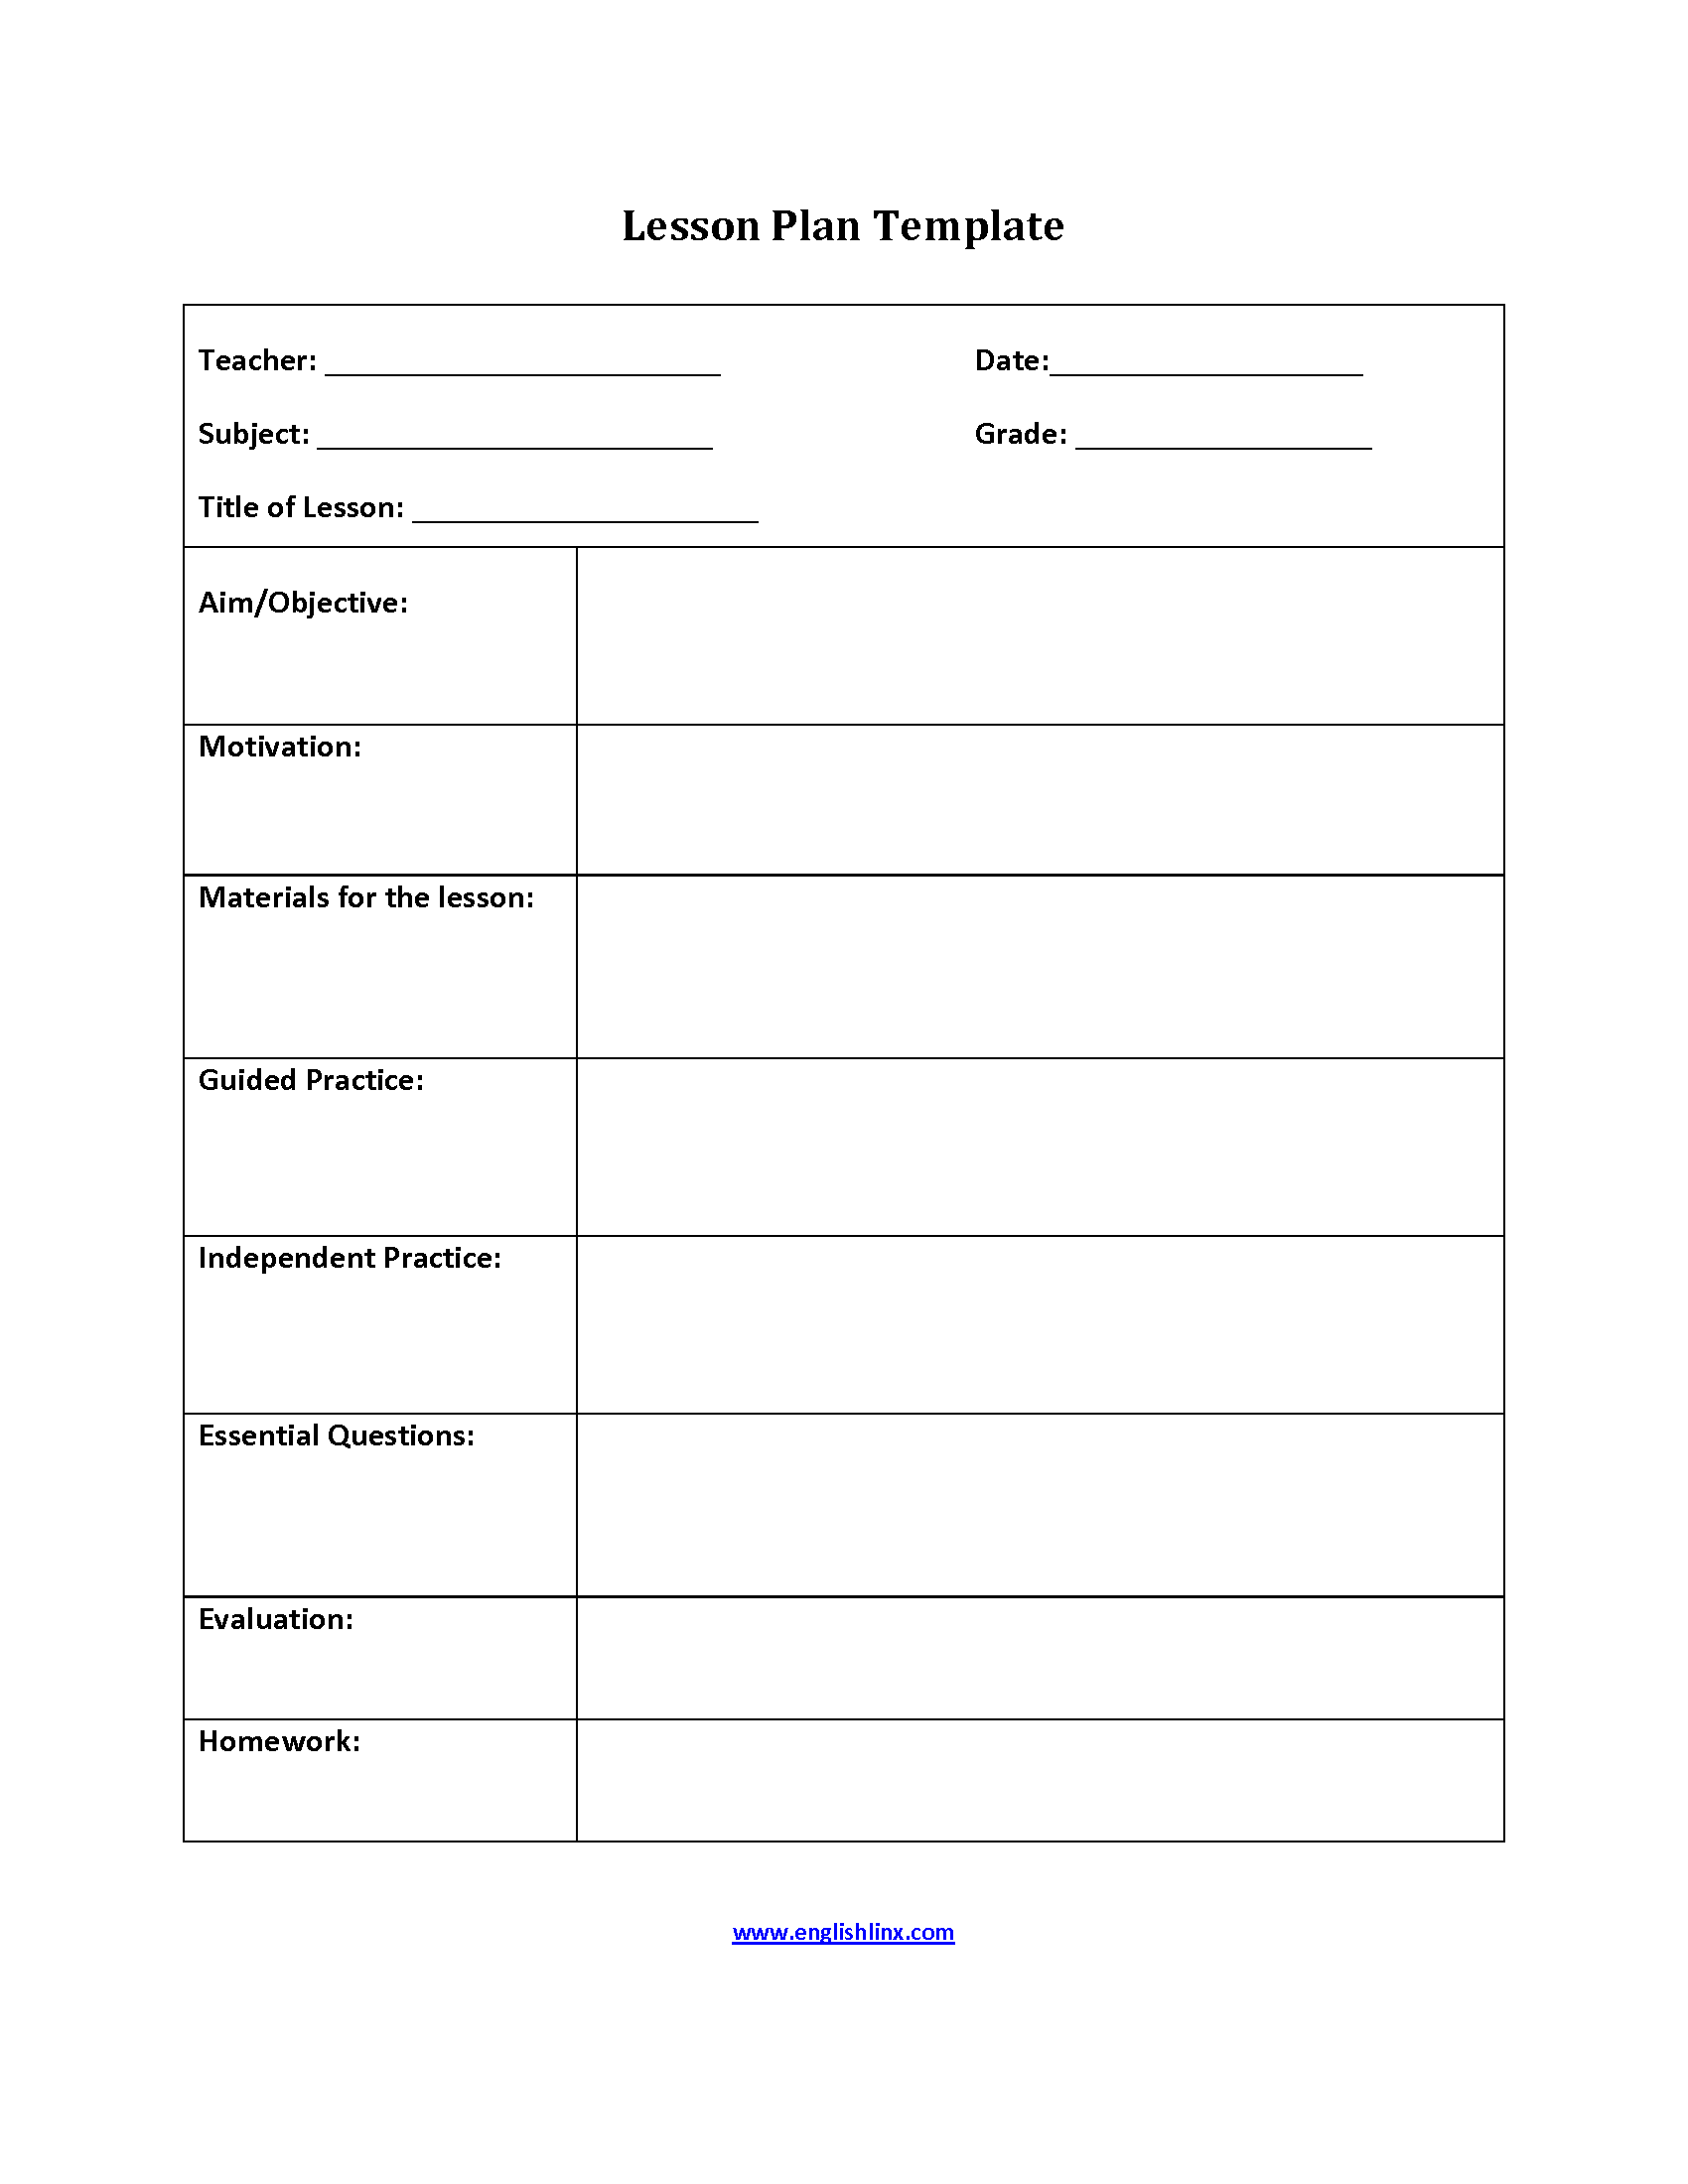 6 point lesson plan template - 12th grade reading lesson plans 10 super innovative